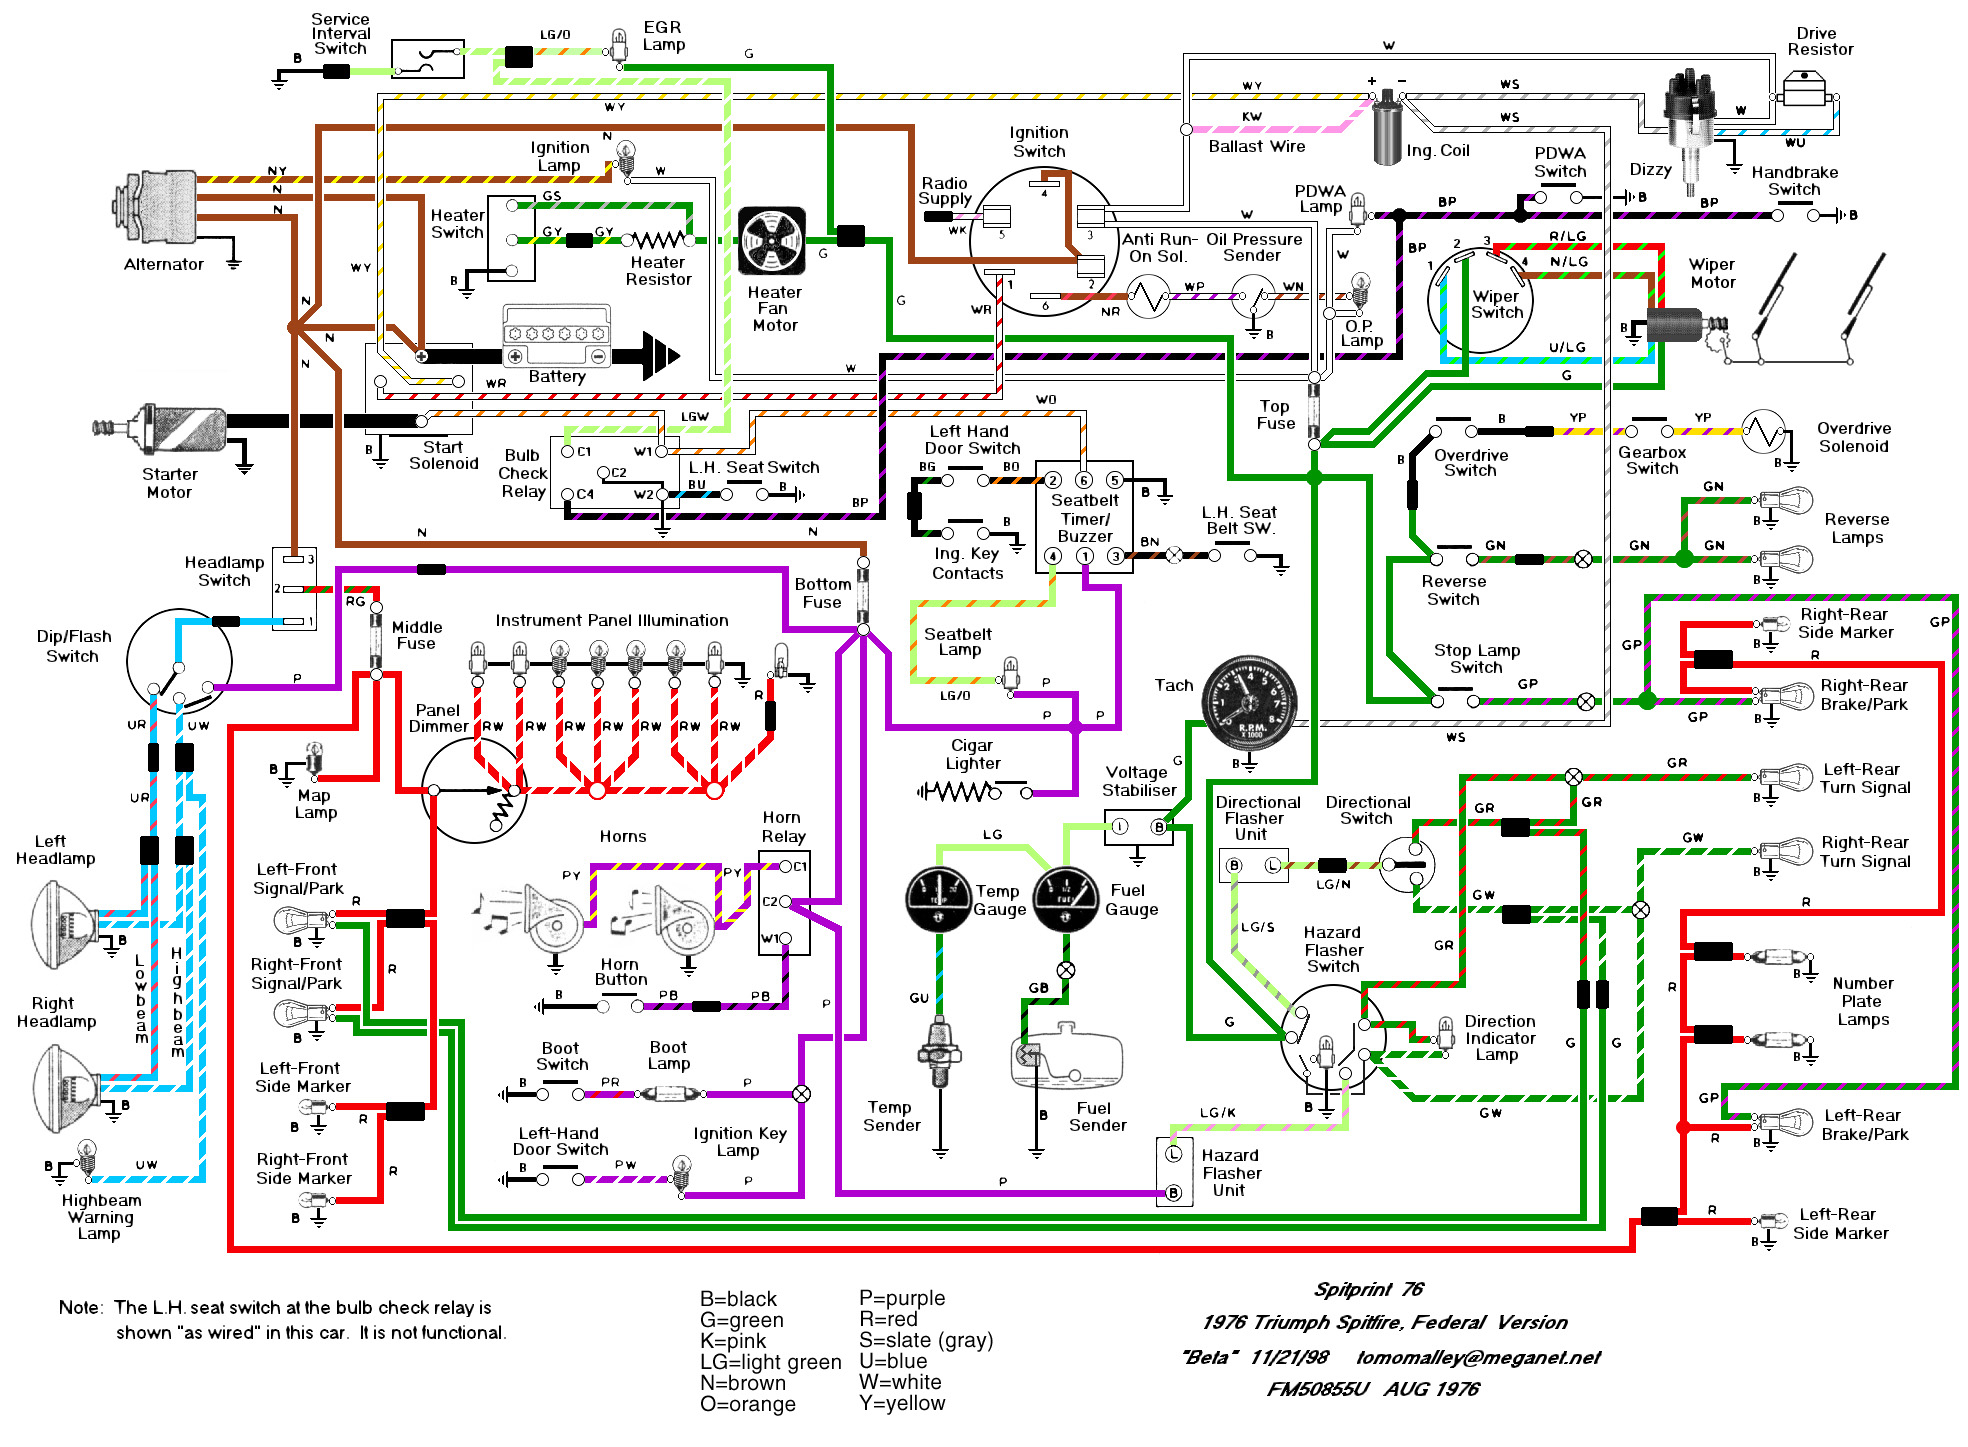 76diagram show wiring diagrams electrical wiring diagram software \u2022 wiring club car light wiring diagram at fashall.co